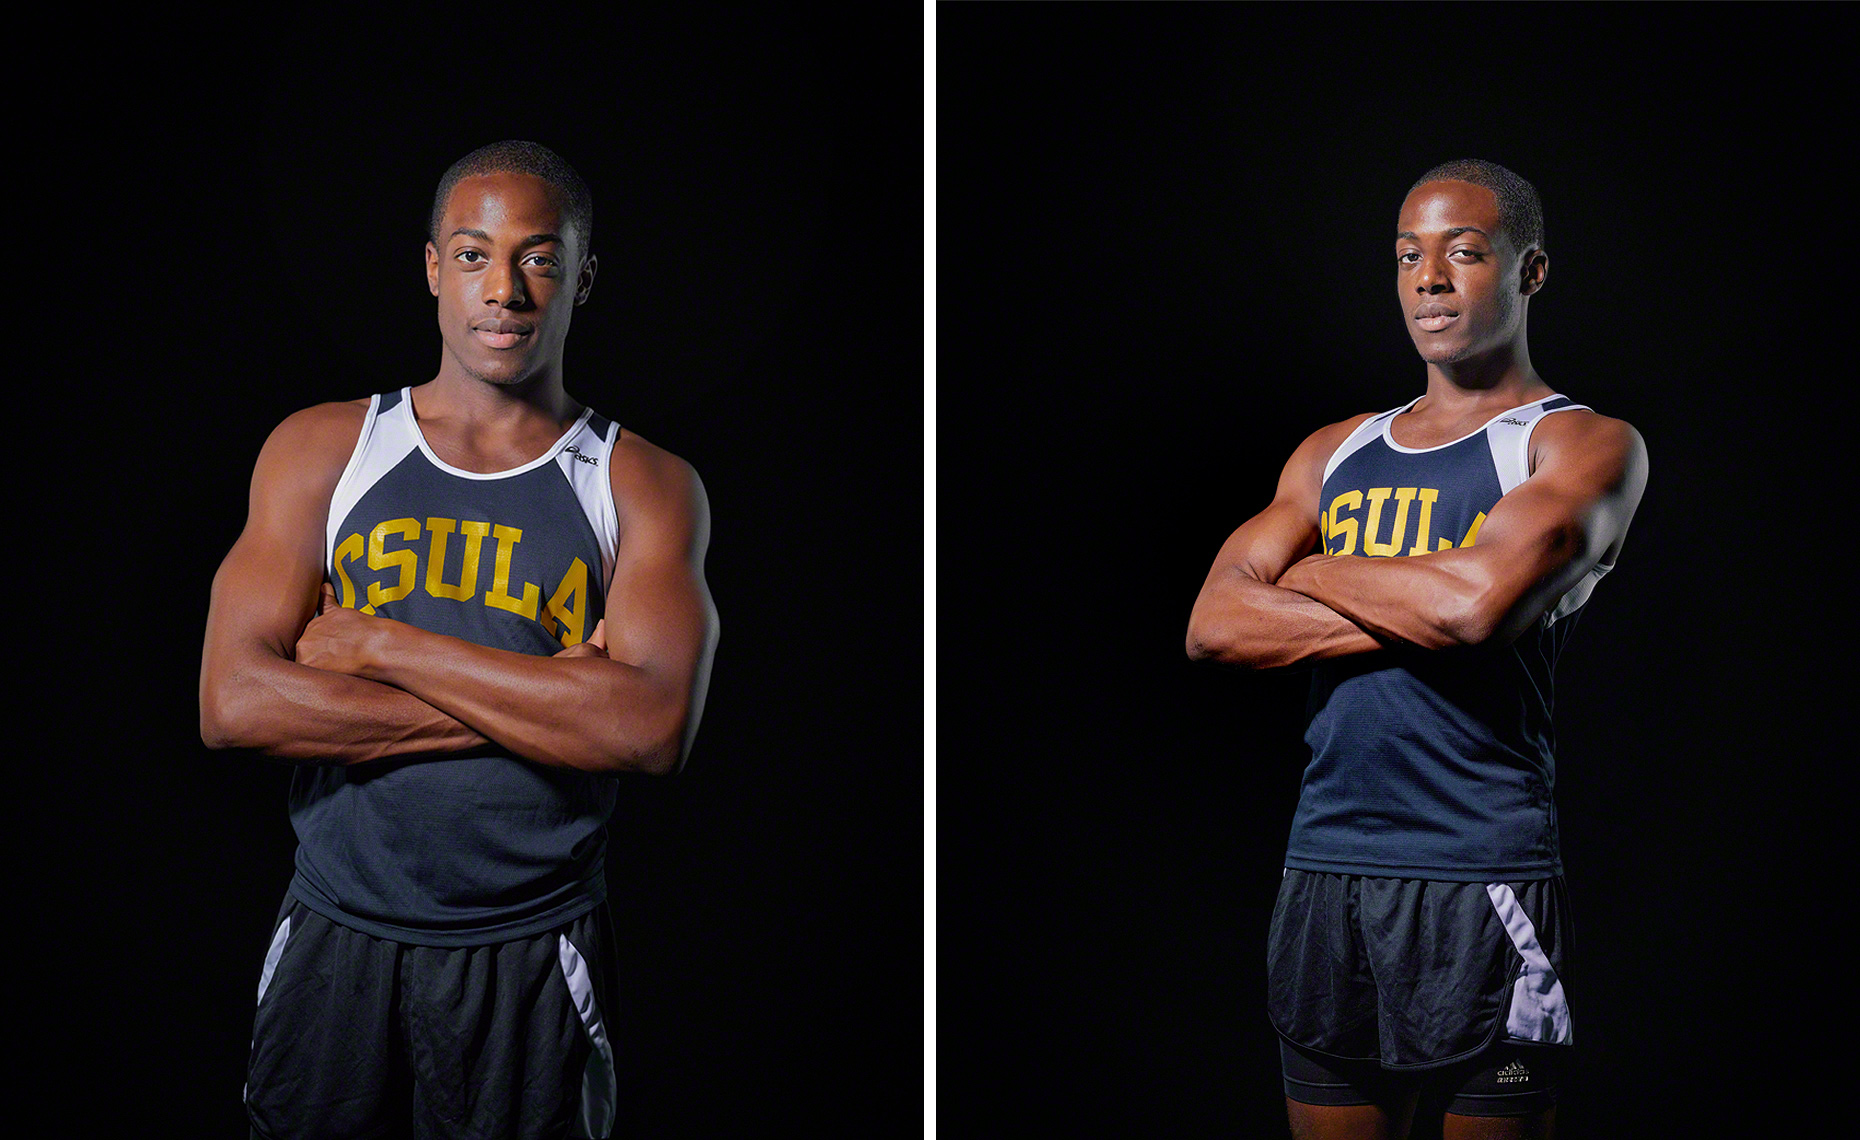 CSULA Track and Field Portrait